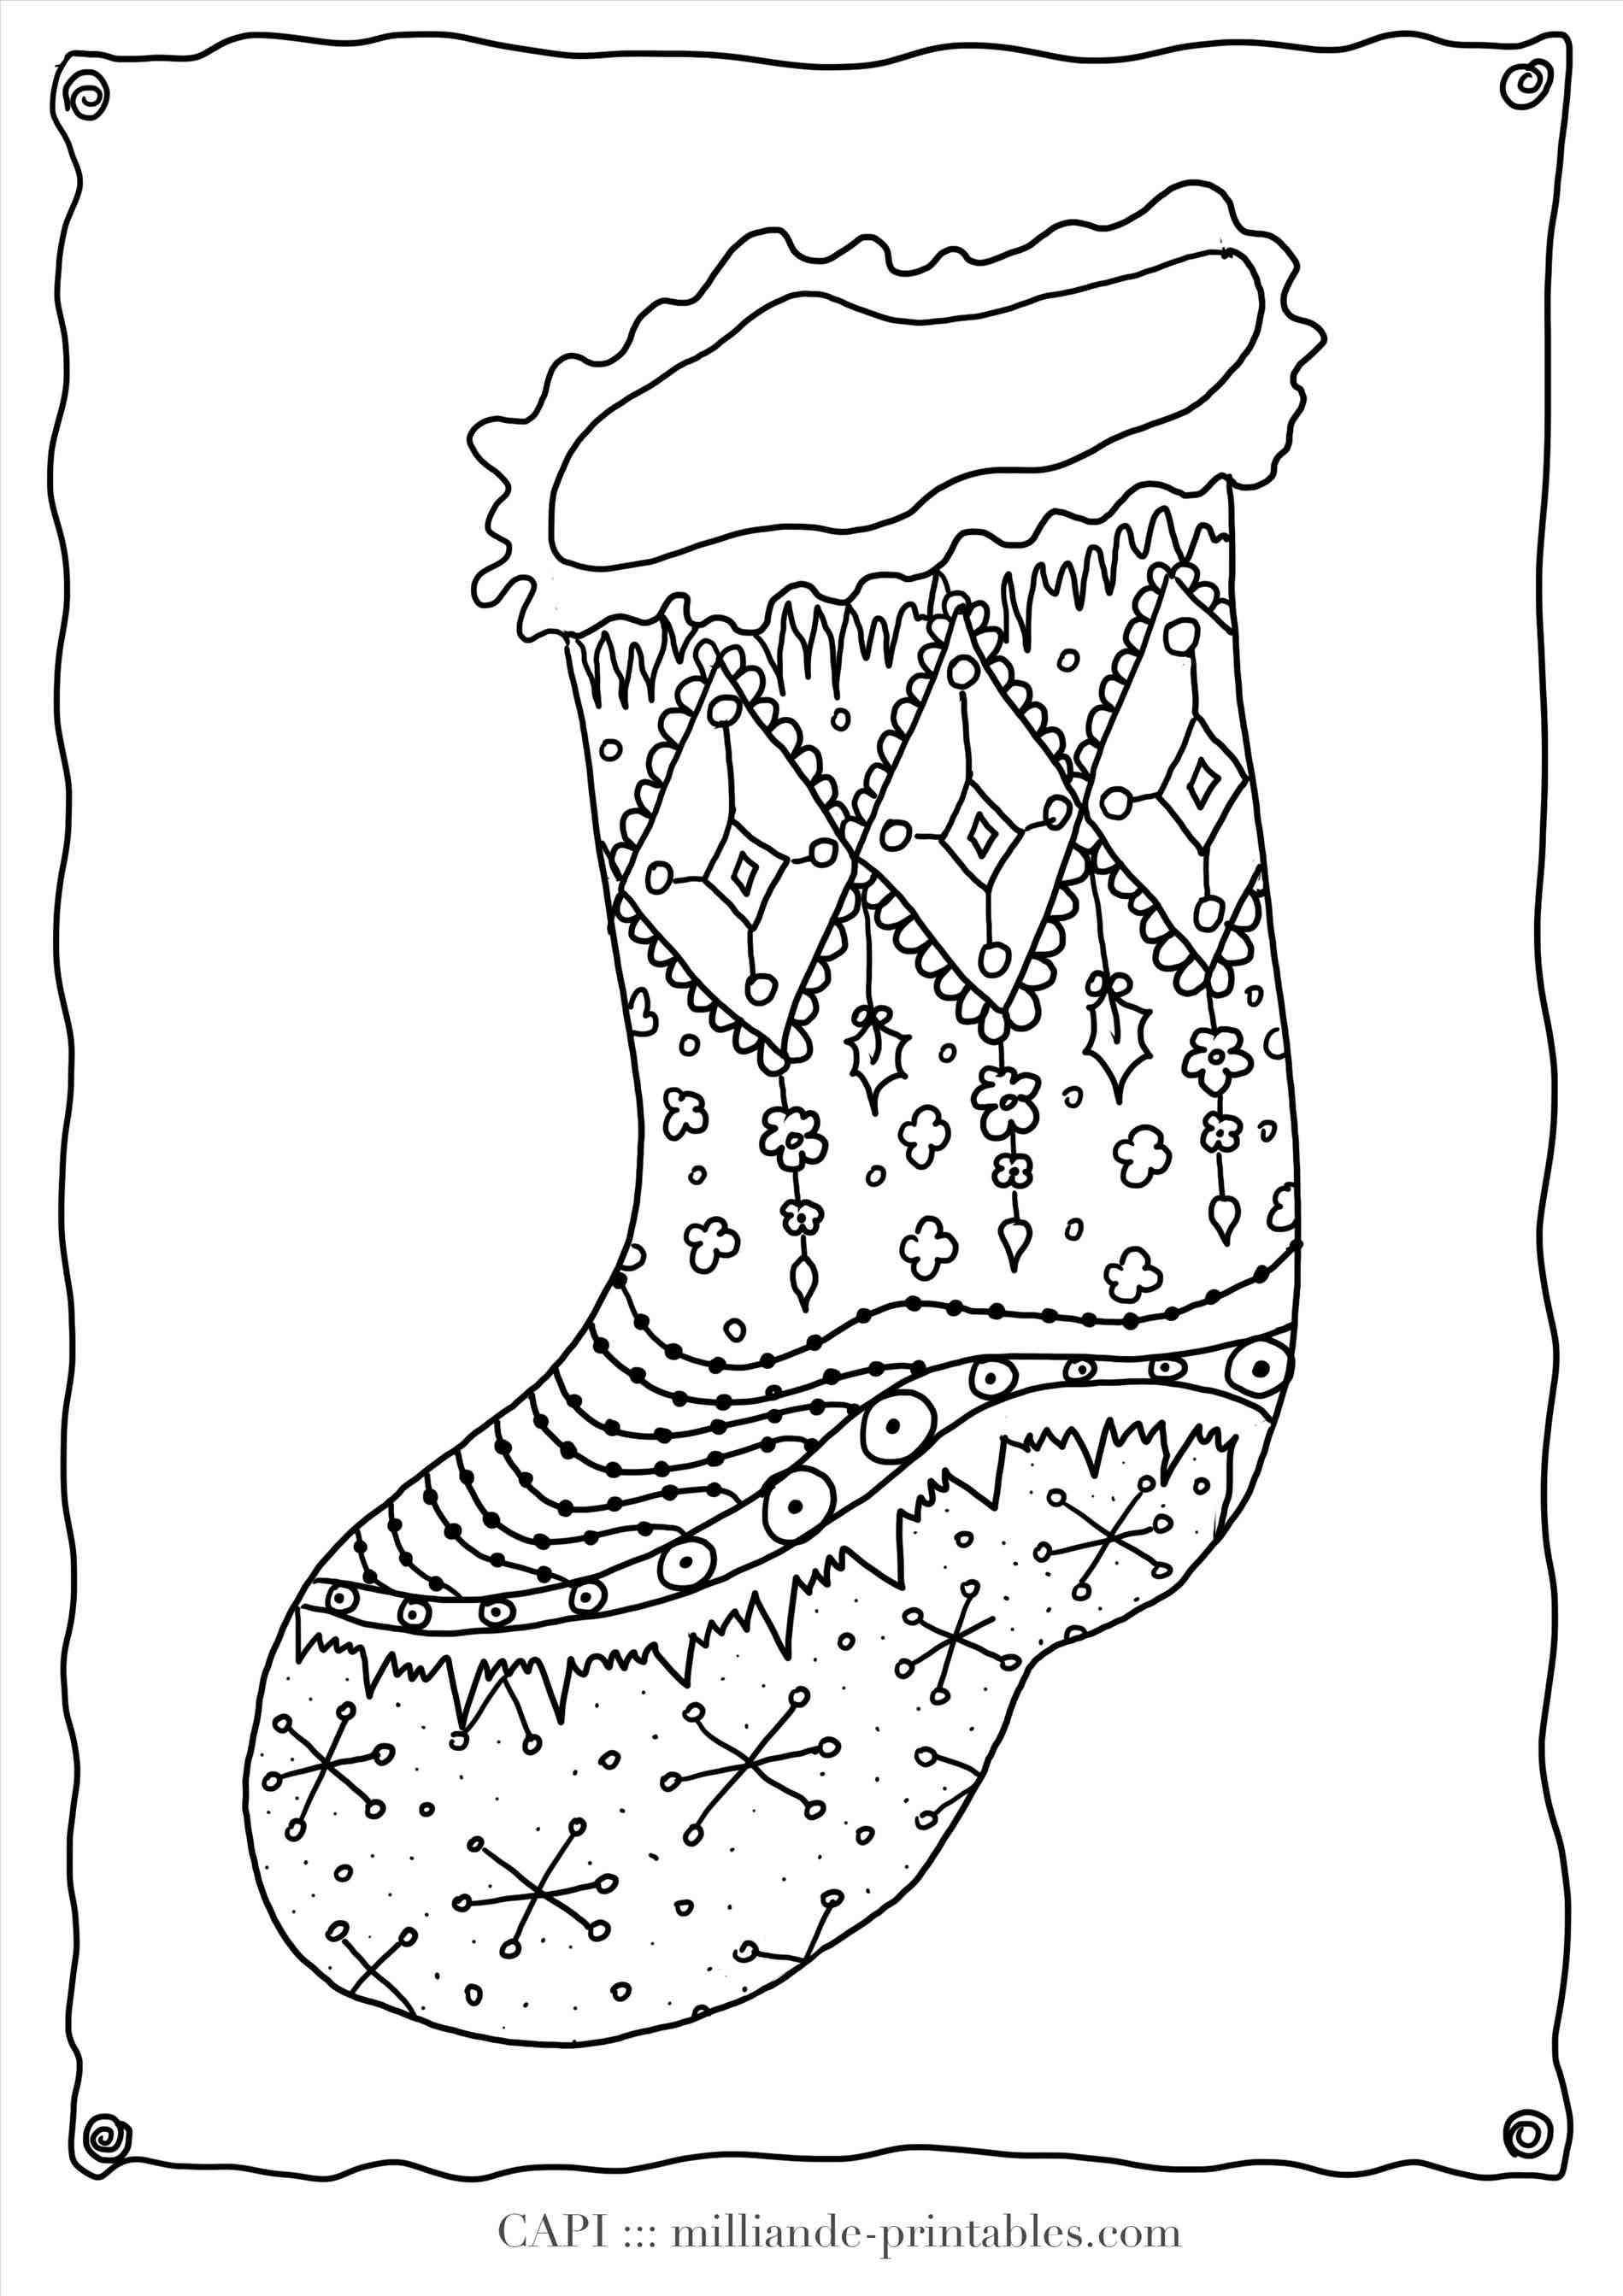 New Post plain christmas stocking coloring page | xmast | Pinterest ...